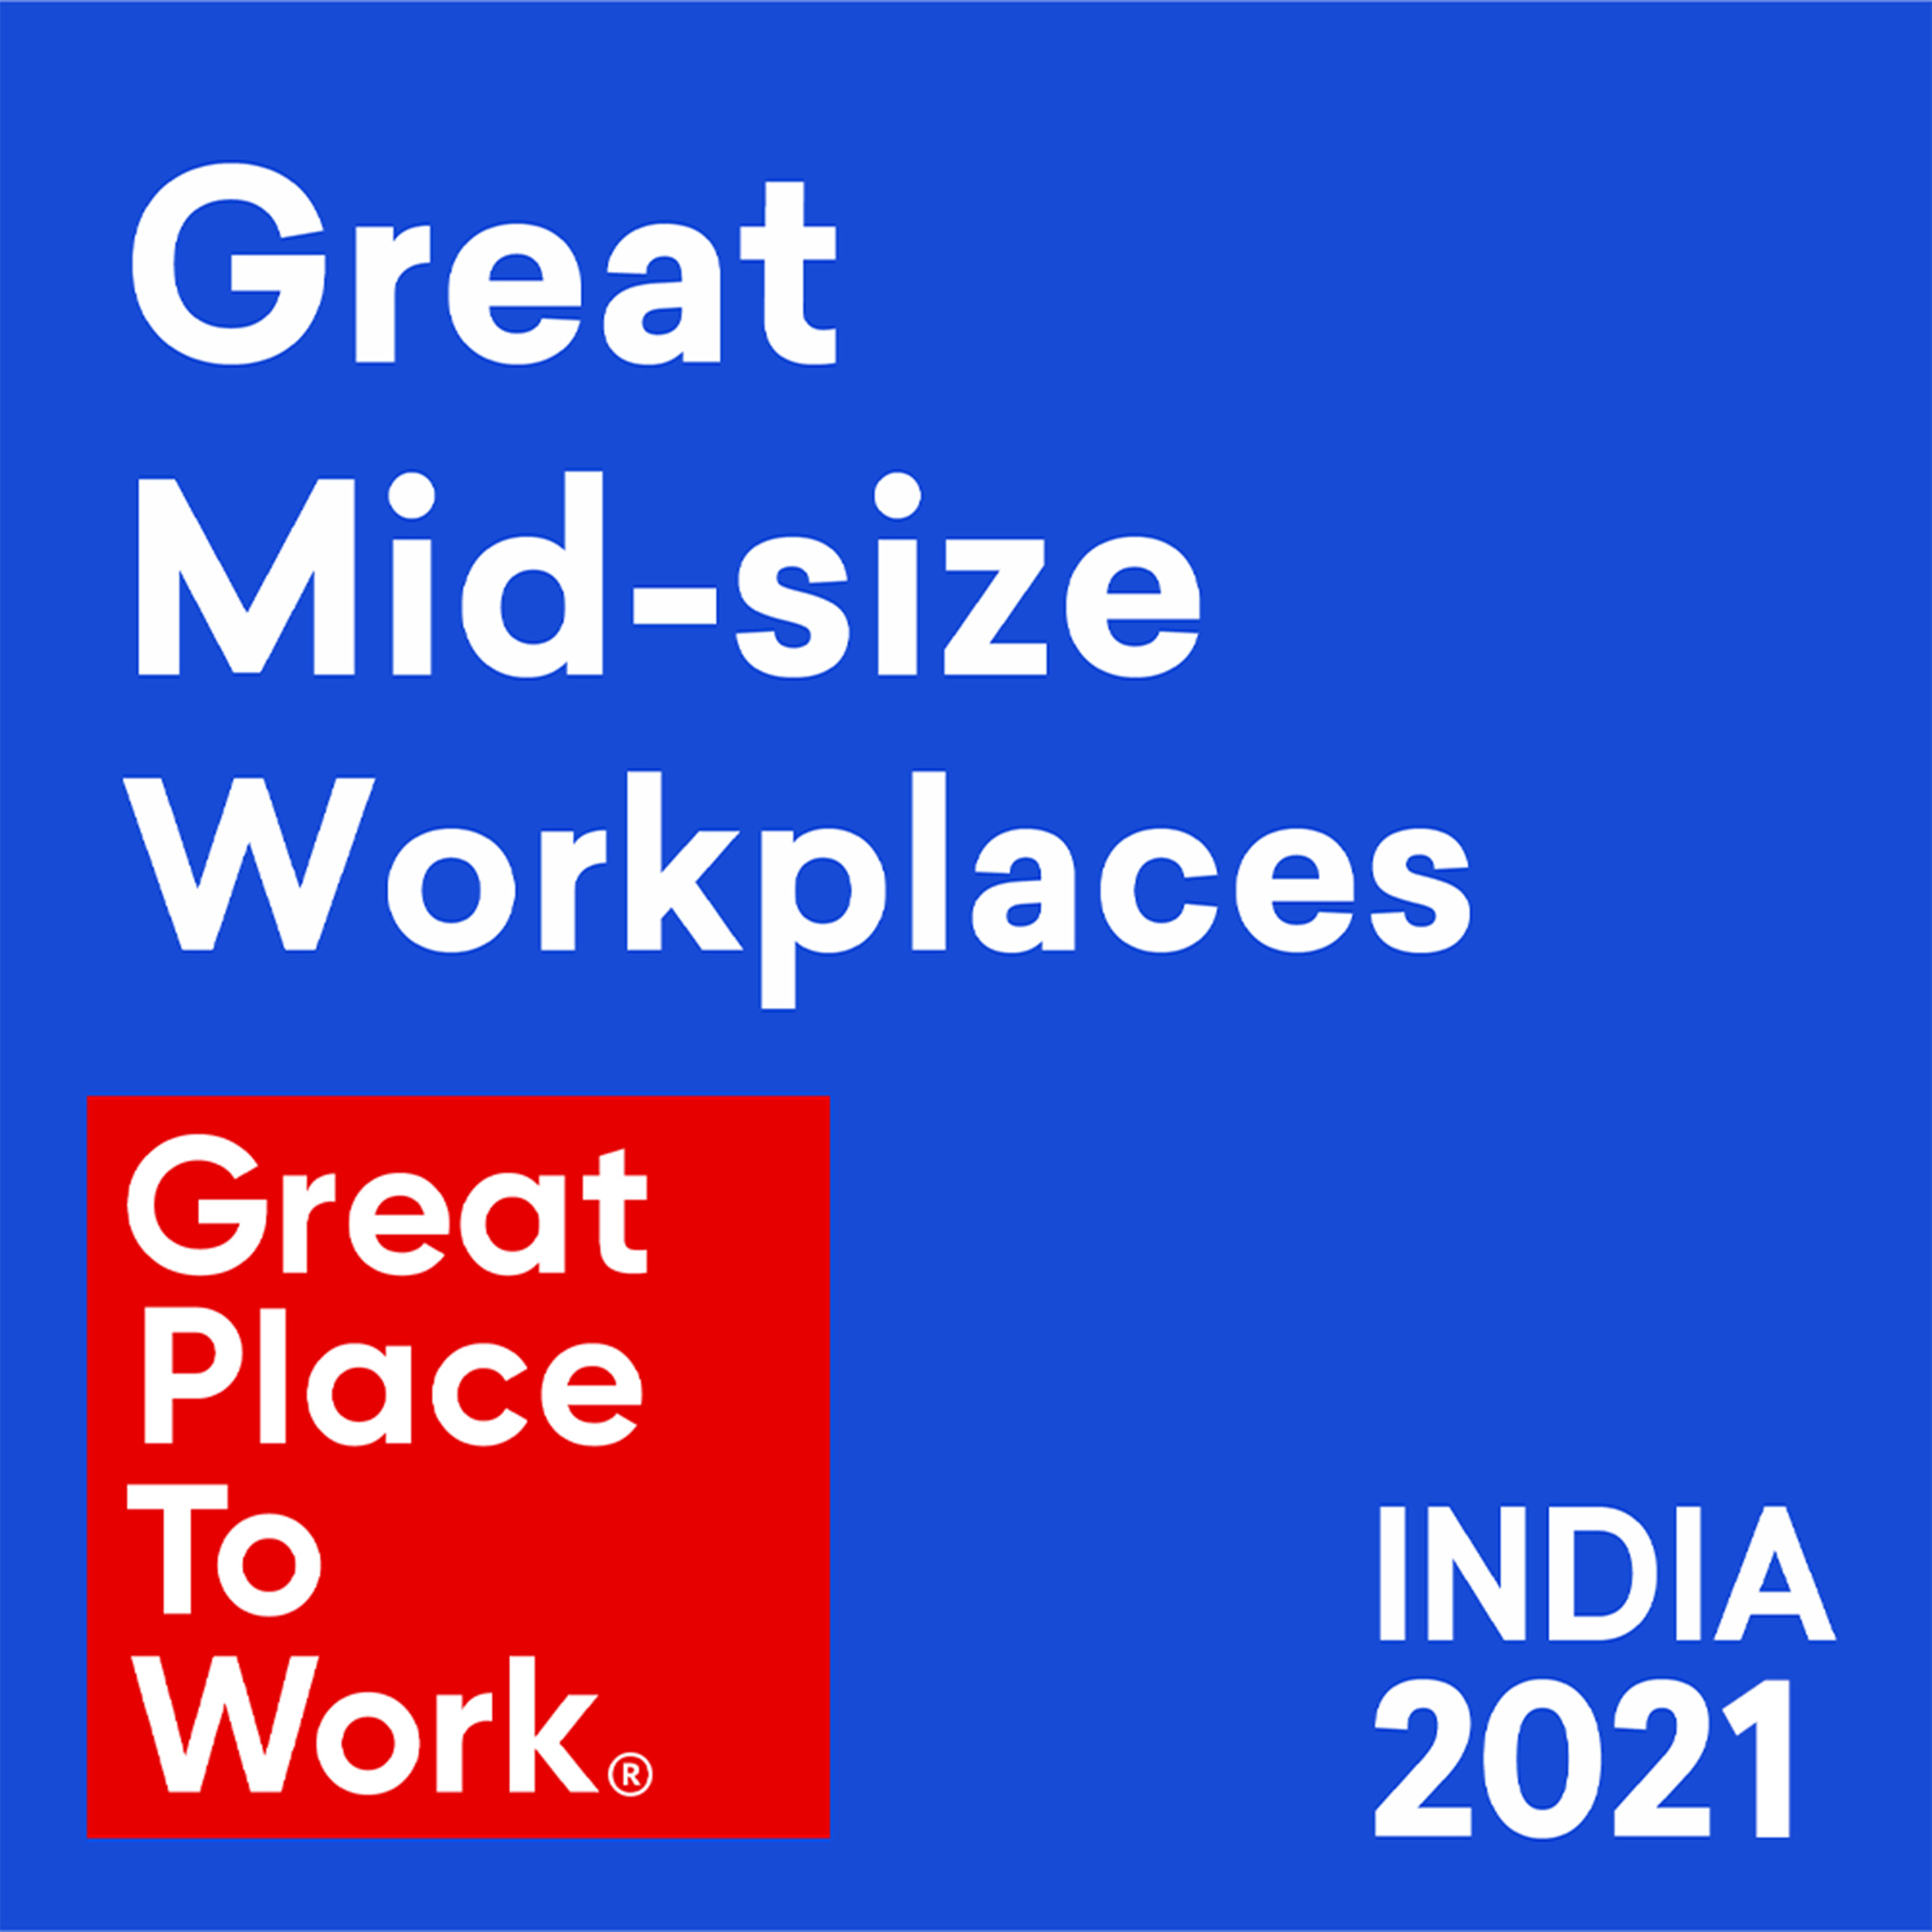 Great Place to Work® Certifies Modicare Limited as India's 5th best Mid-size Company to Work for the Second Consecutive Year in 2021